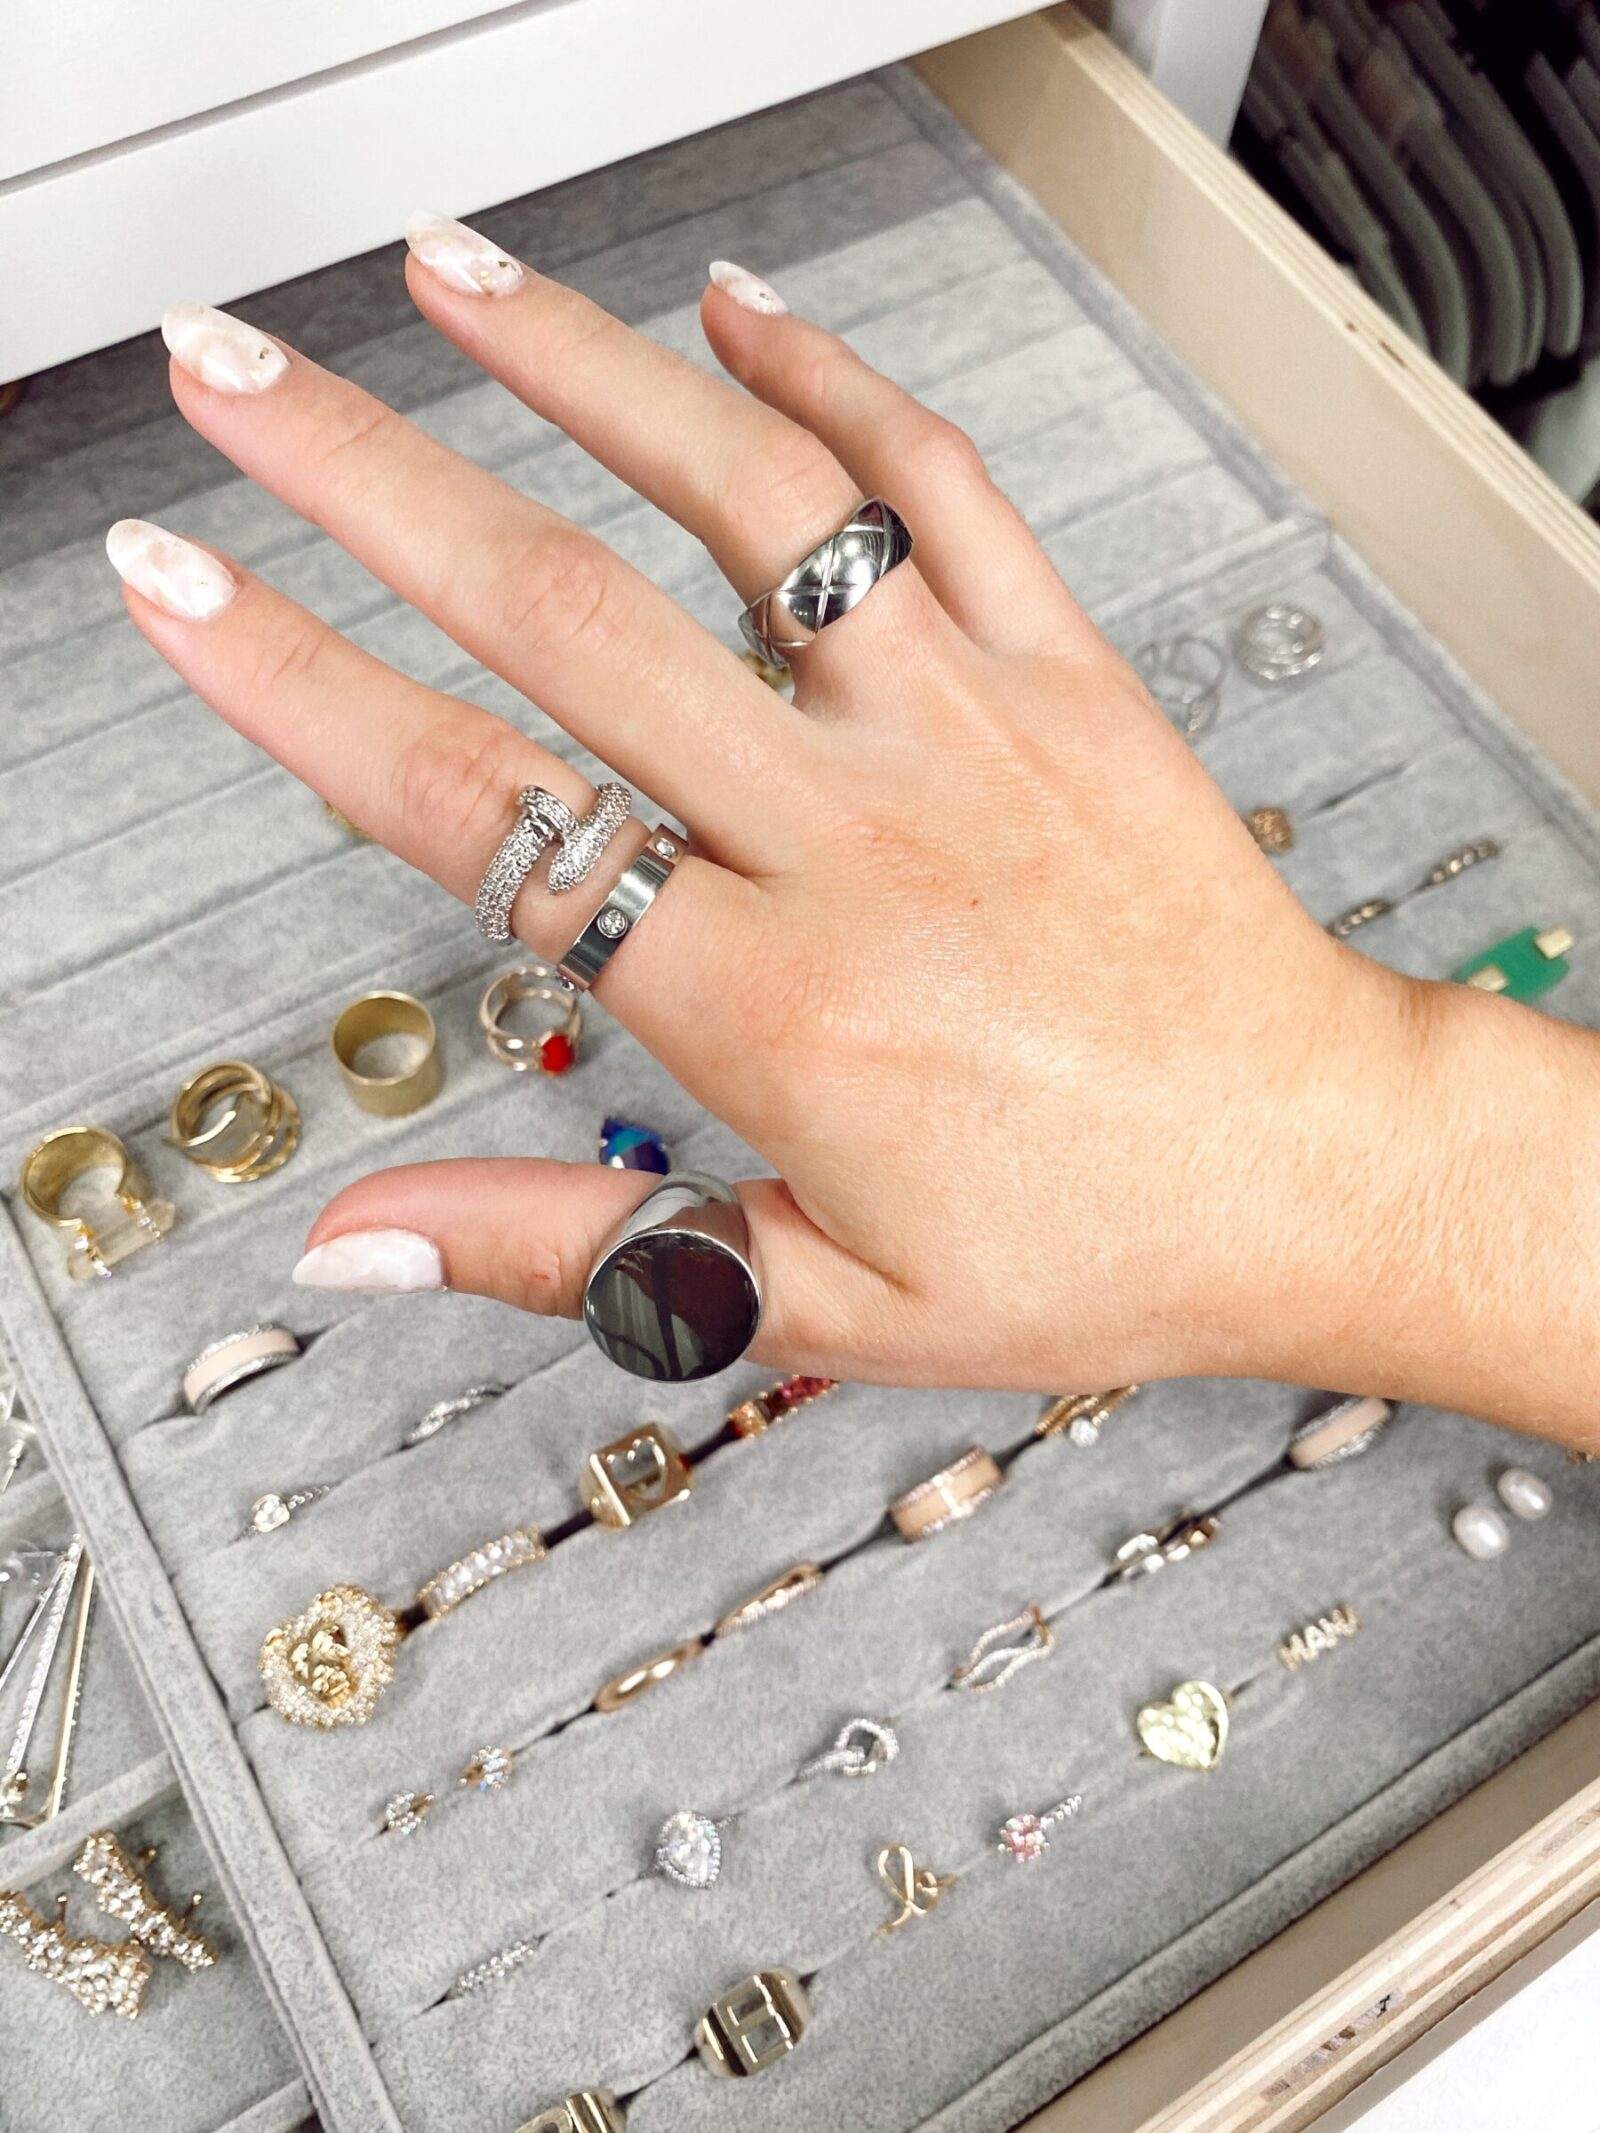 Where to Buy Affordable Dainty silver Rings for Everyday Wear